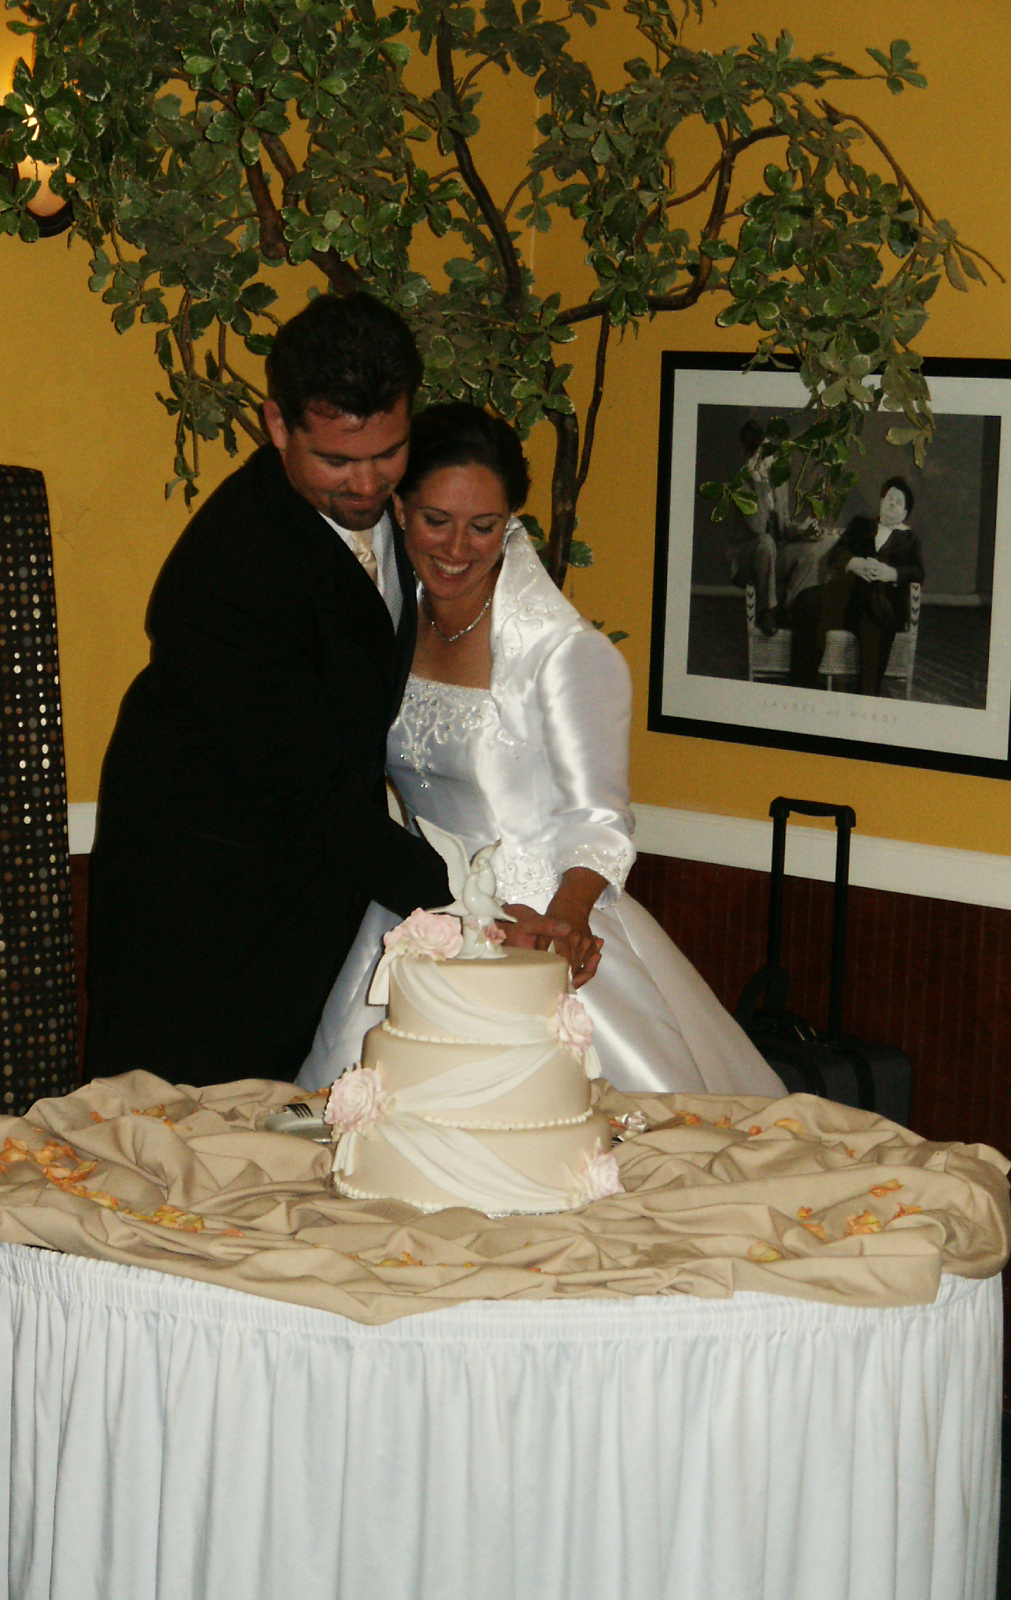 Cakes, cake, Bride, Groom